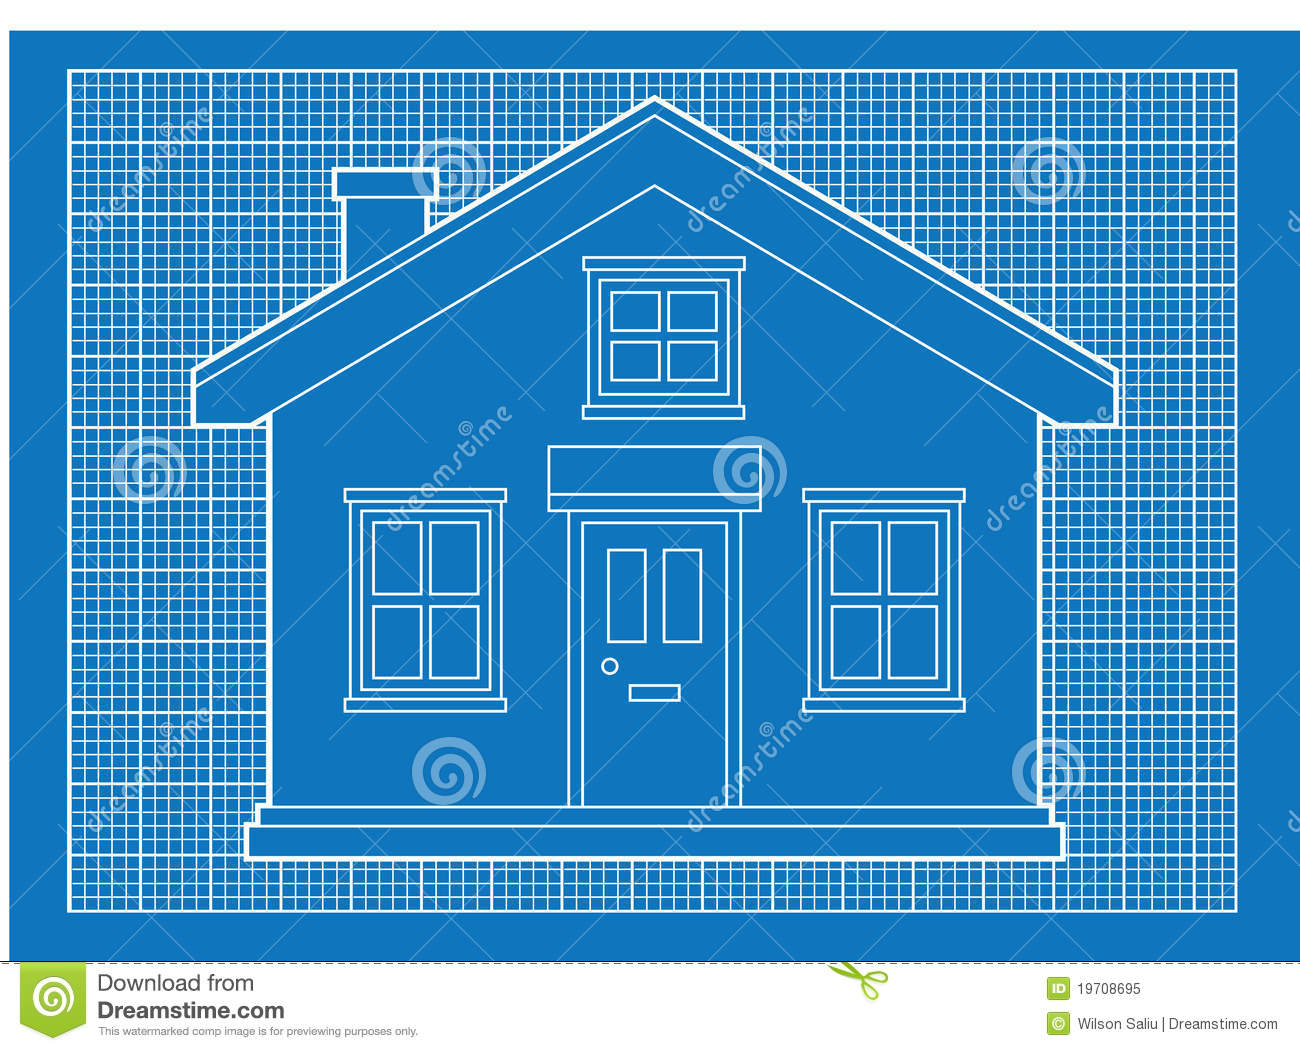 Https Www Dreamstime Com Royalty Free Stock Photo Simple House Blueprints Image19708695